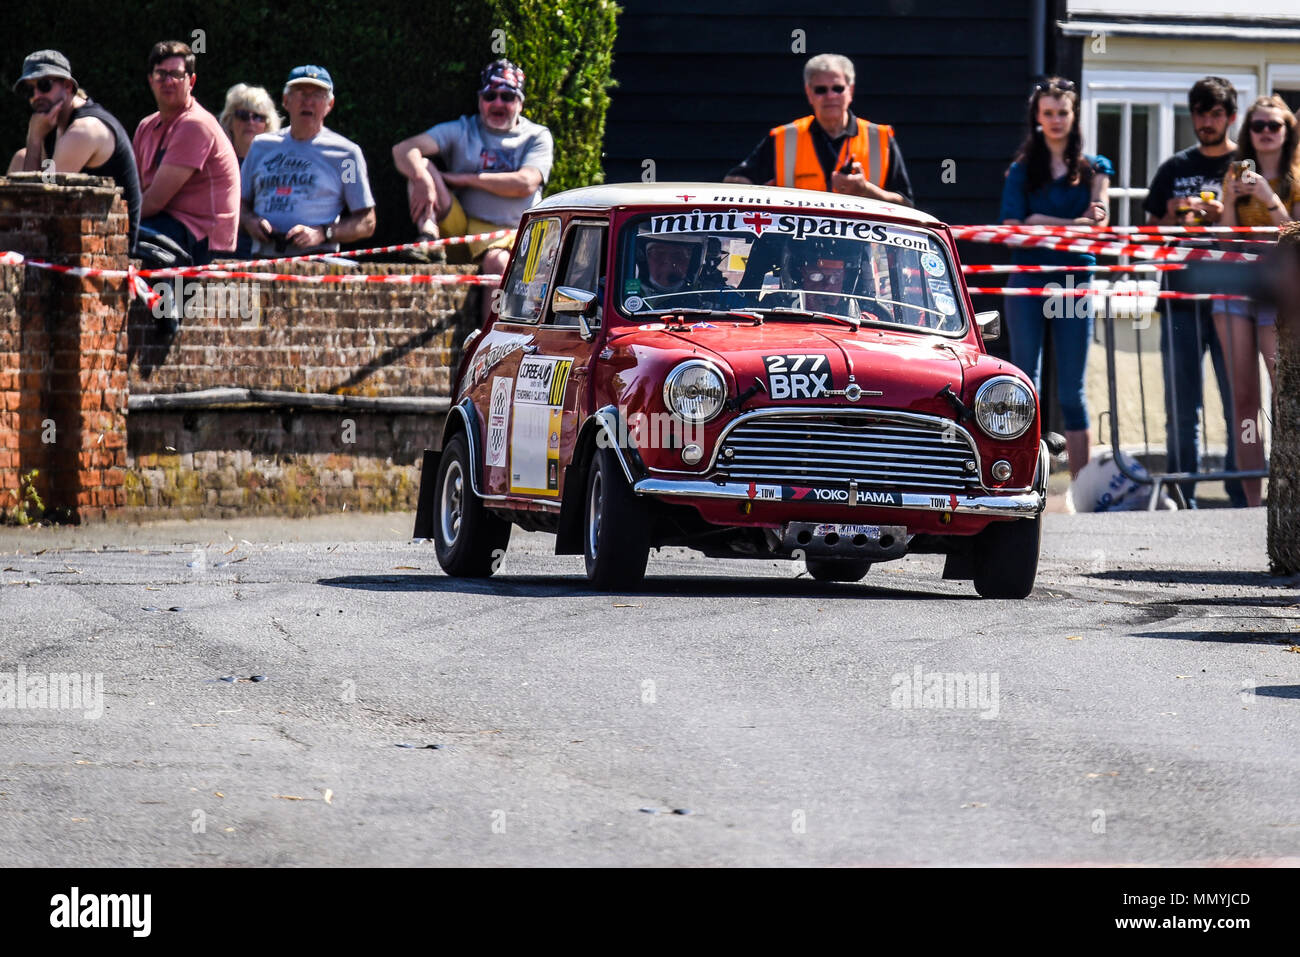 Peter Horsburgh driver Bob Ward co driver racing Morris Mini Cooper in the closed public road Corbeau Seats car Rally Tendring and Clacton, Essex, UK - Stock Image